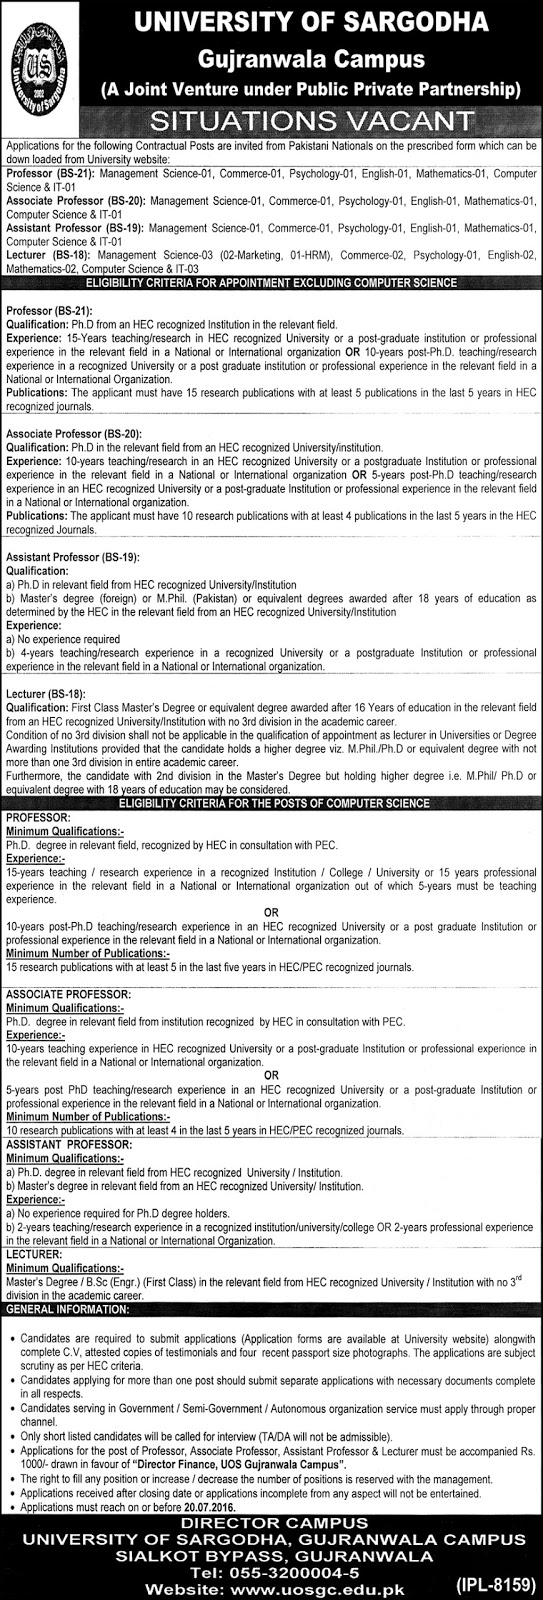 Jobs in University of Sargodha for Teaching Faculty